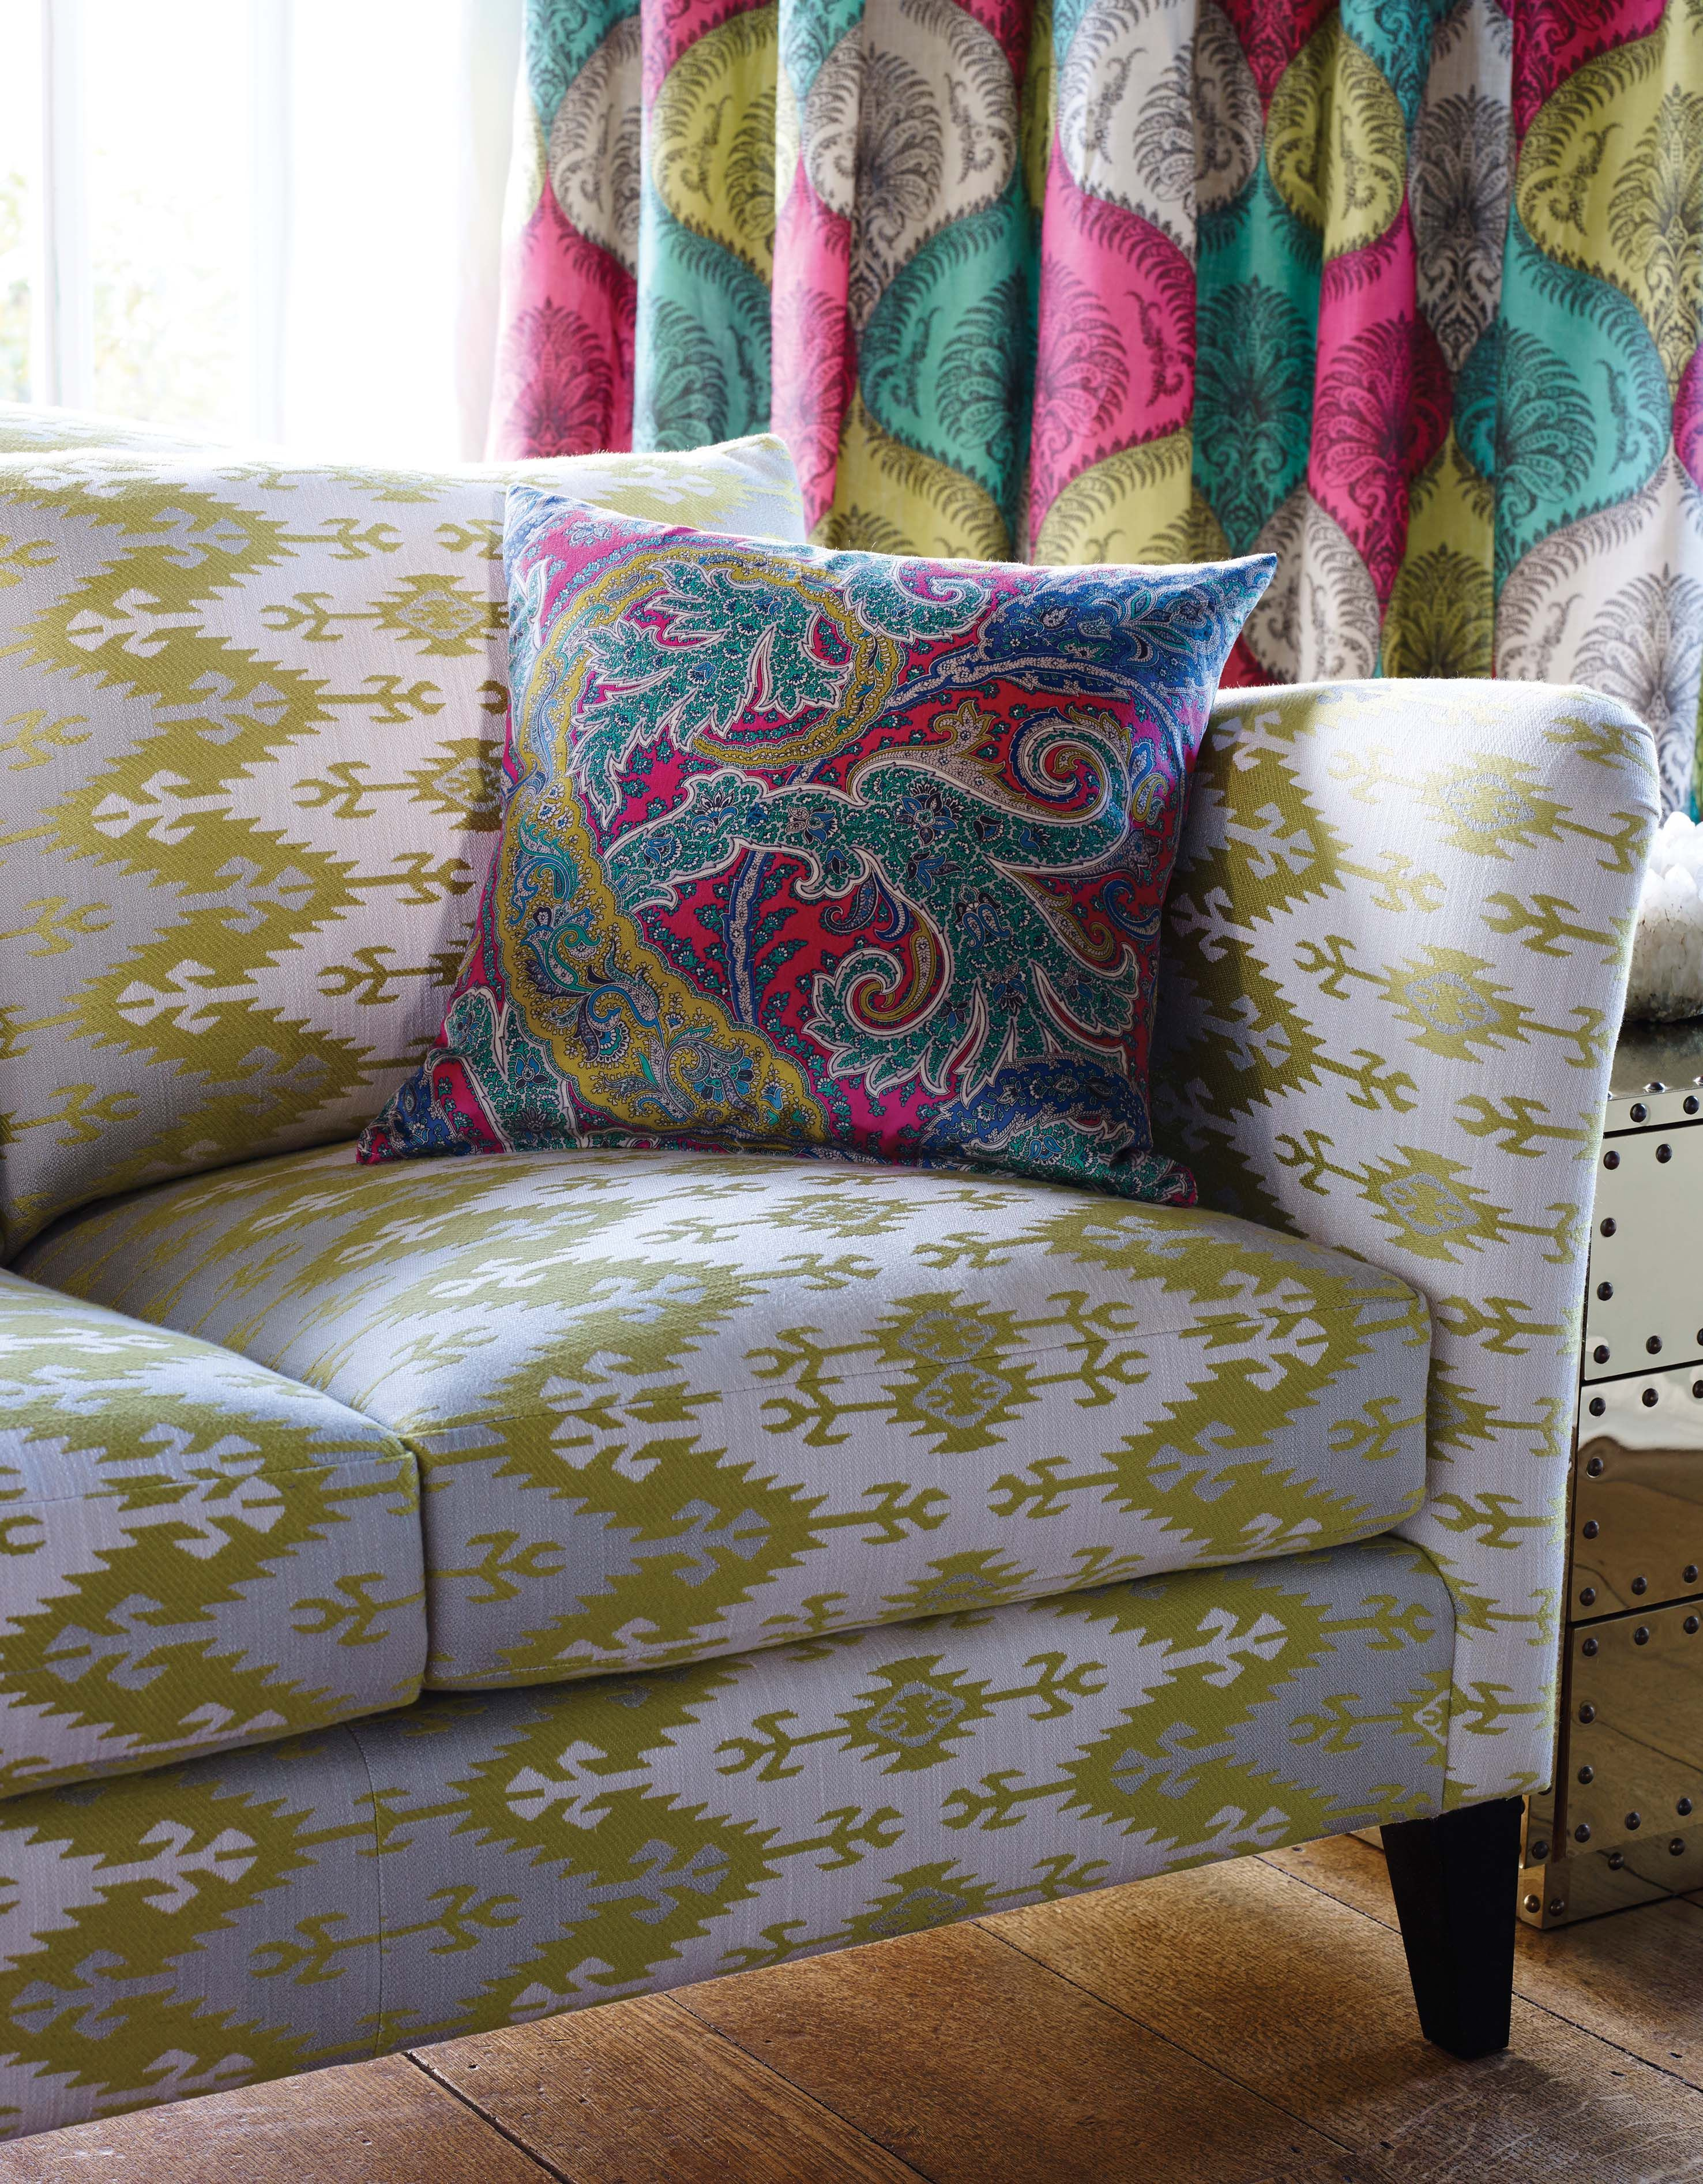 Palas from the new pasha collection at osborne little spring 2015 www osborneandlittle com